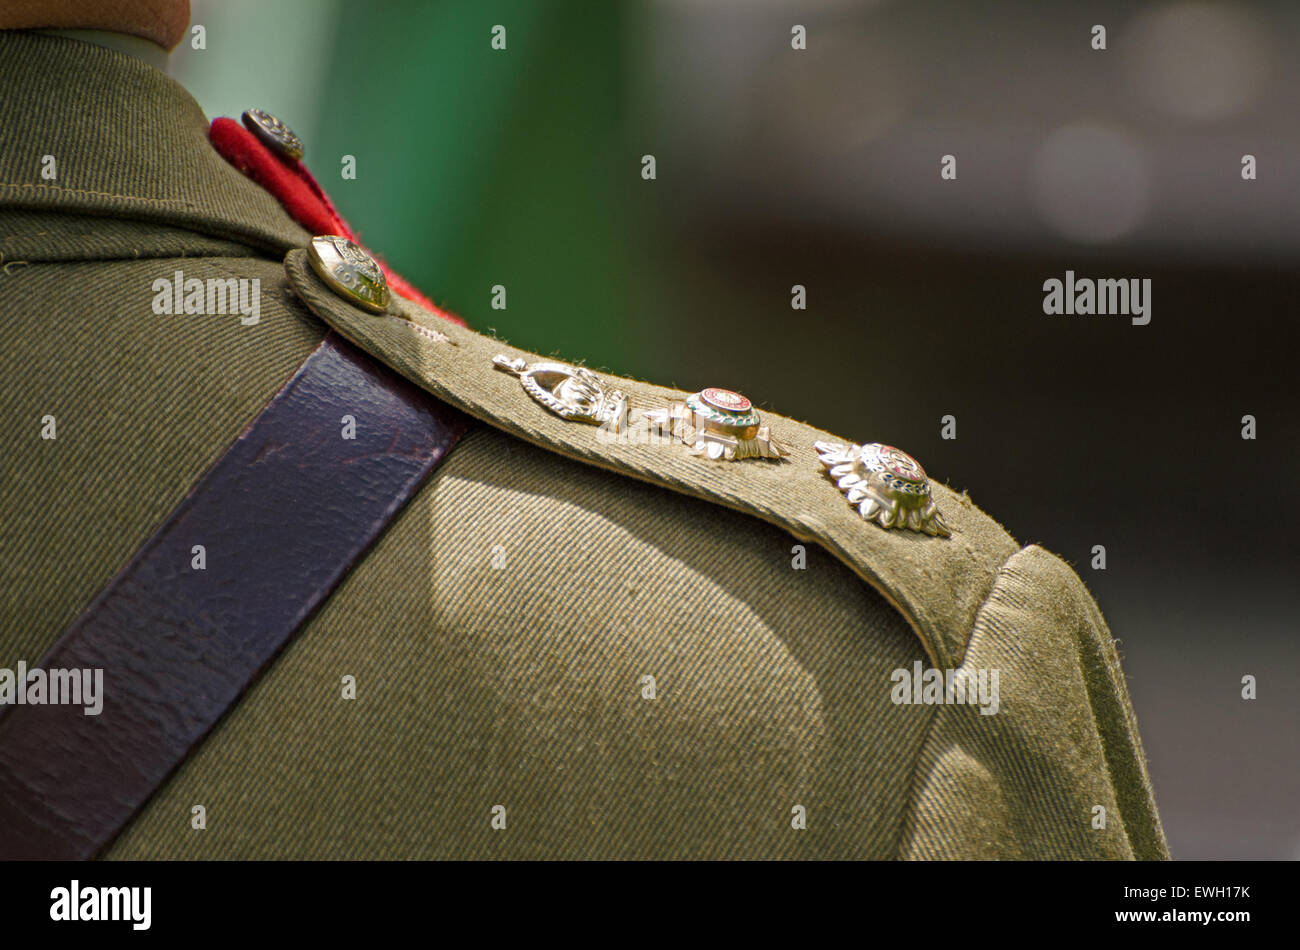 Rear view of the shoulder of a man wearing the uniform of a WW2 British Army Colonel showing pips and crown insignia - Stock Image